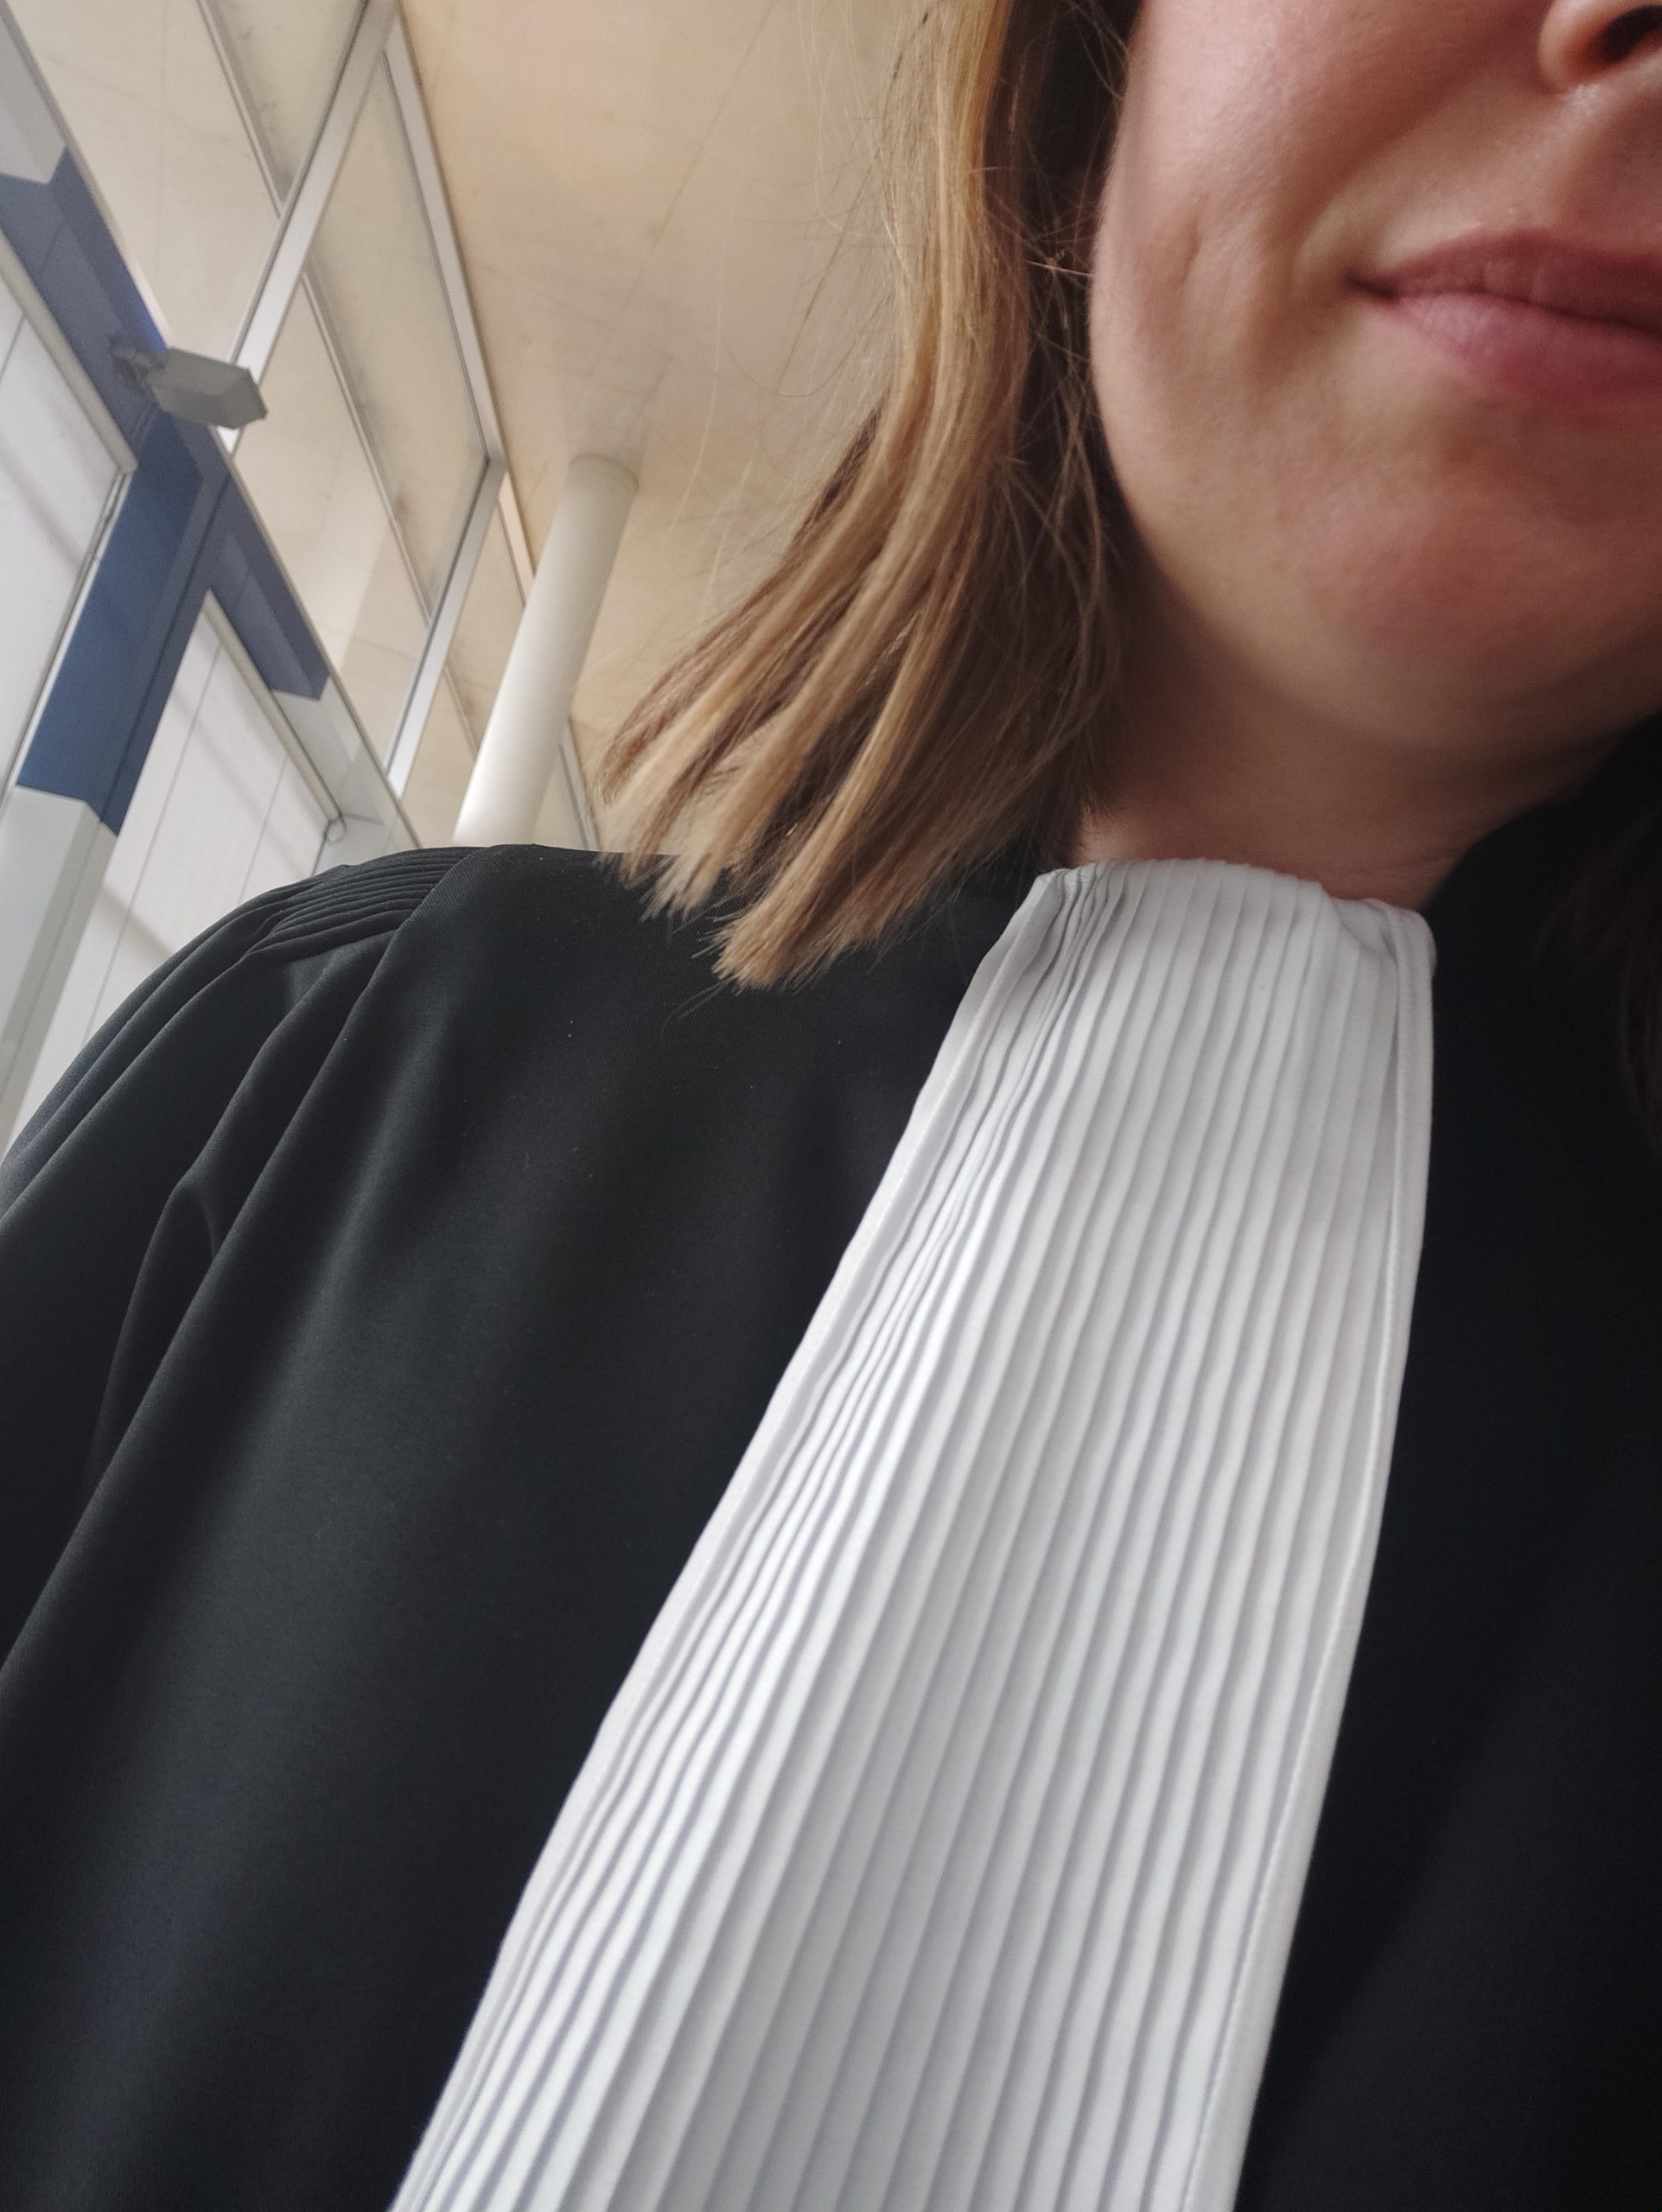 VIOLENCES CONJUGALES : L'AVOCAT DU PREVENU